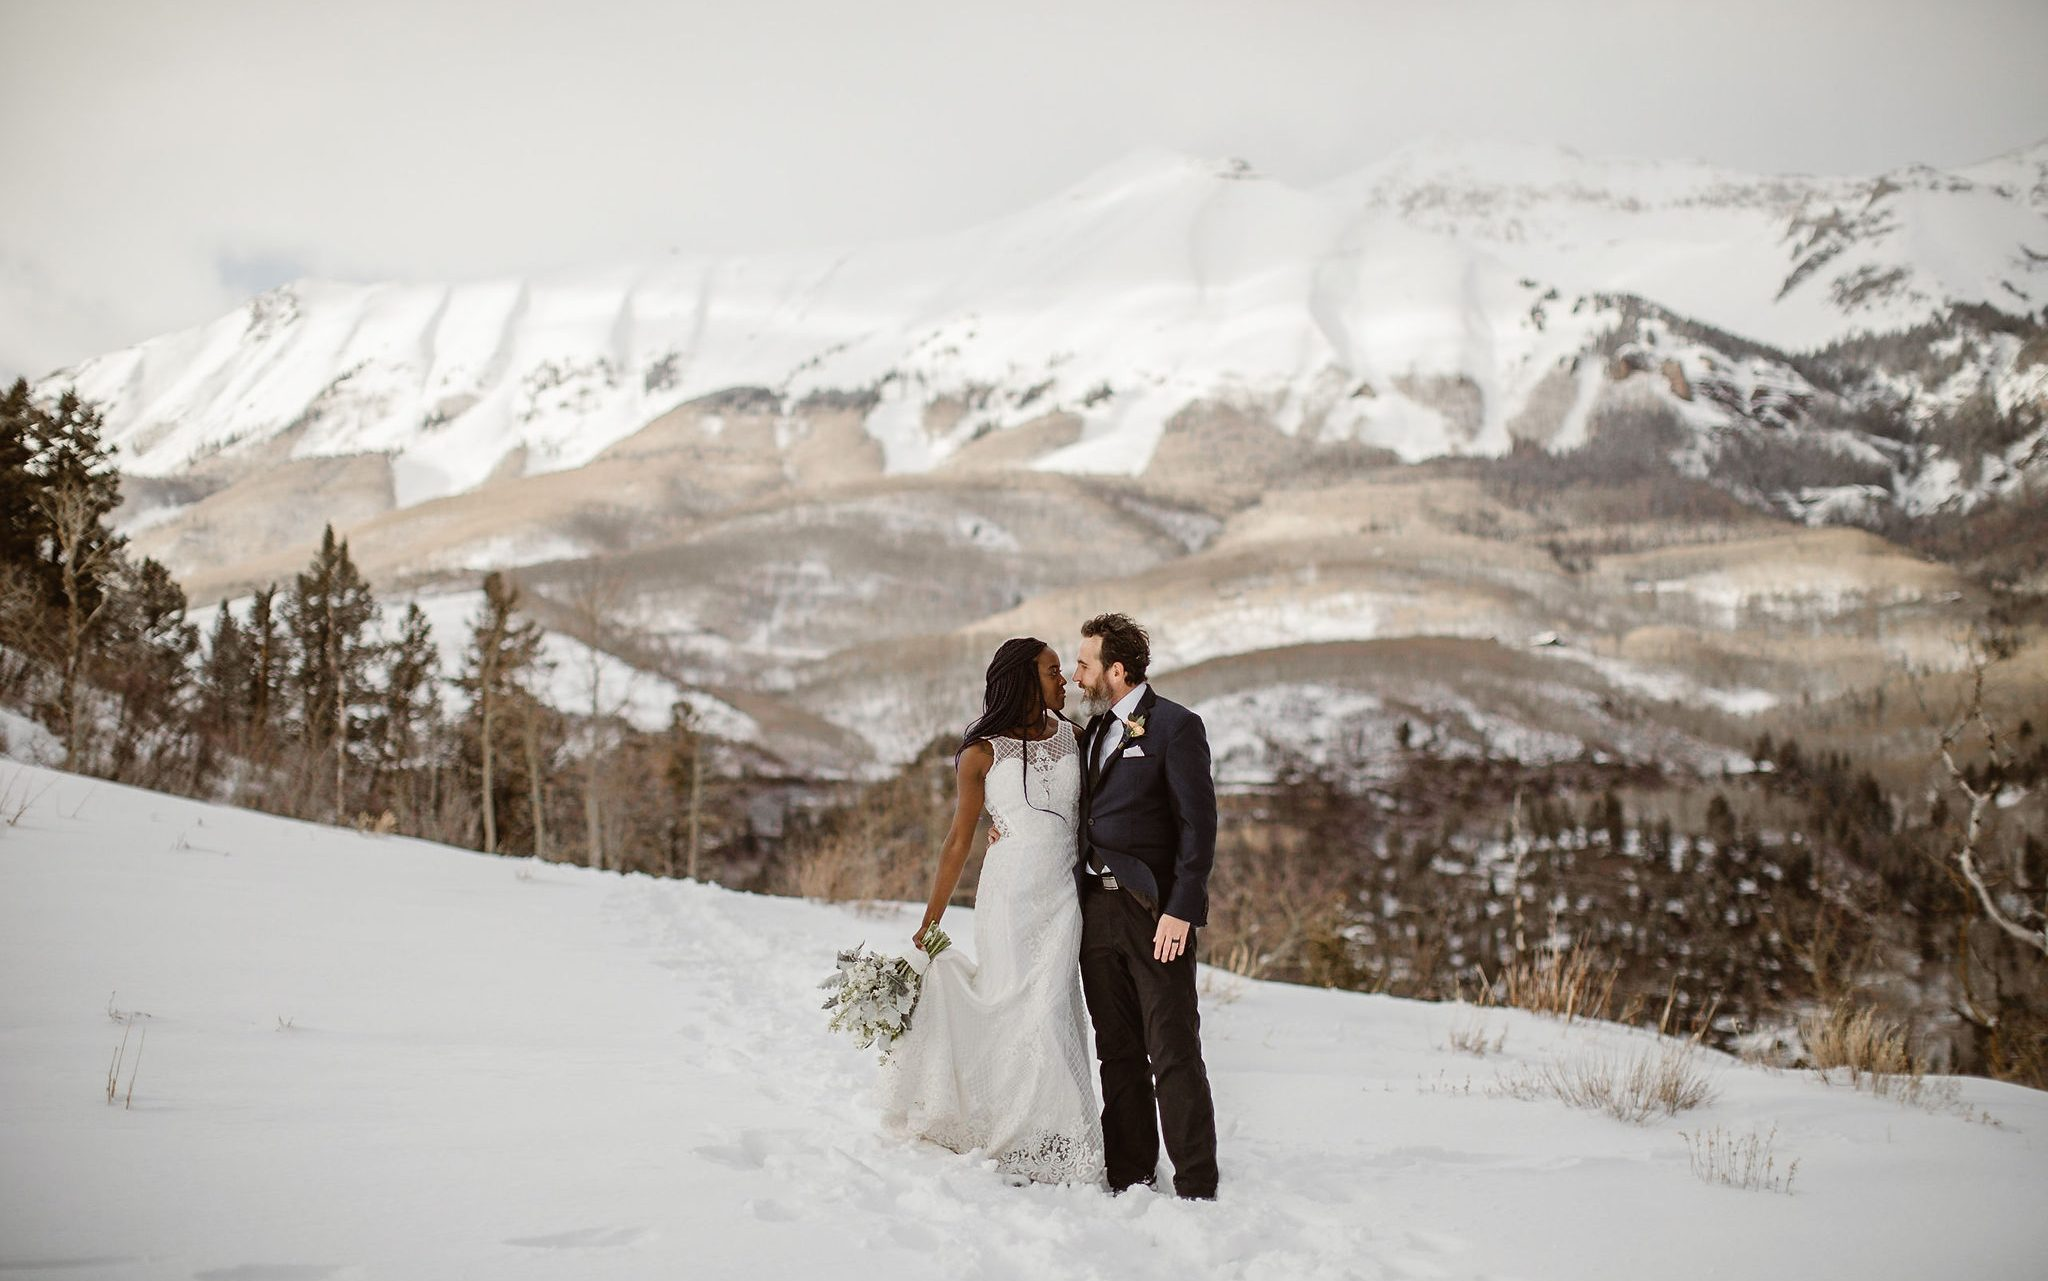 a bride wearing a white glittery wedding gown and groom wearing a black and navy blue tux are standing in snow with a snow covered mountain in the background